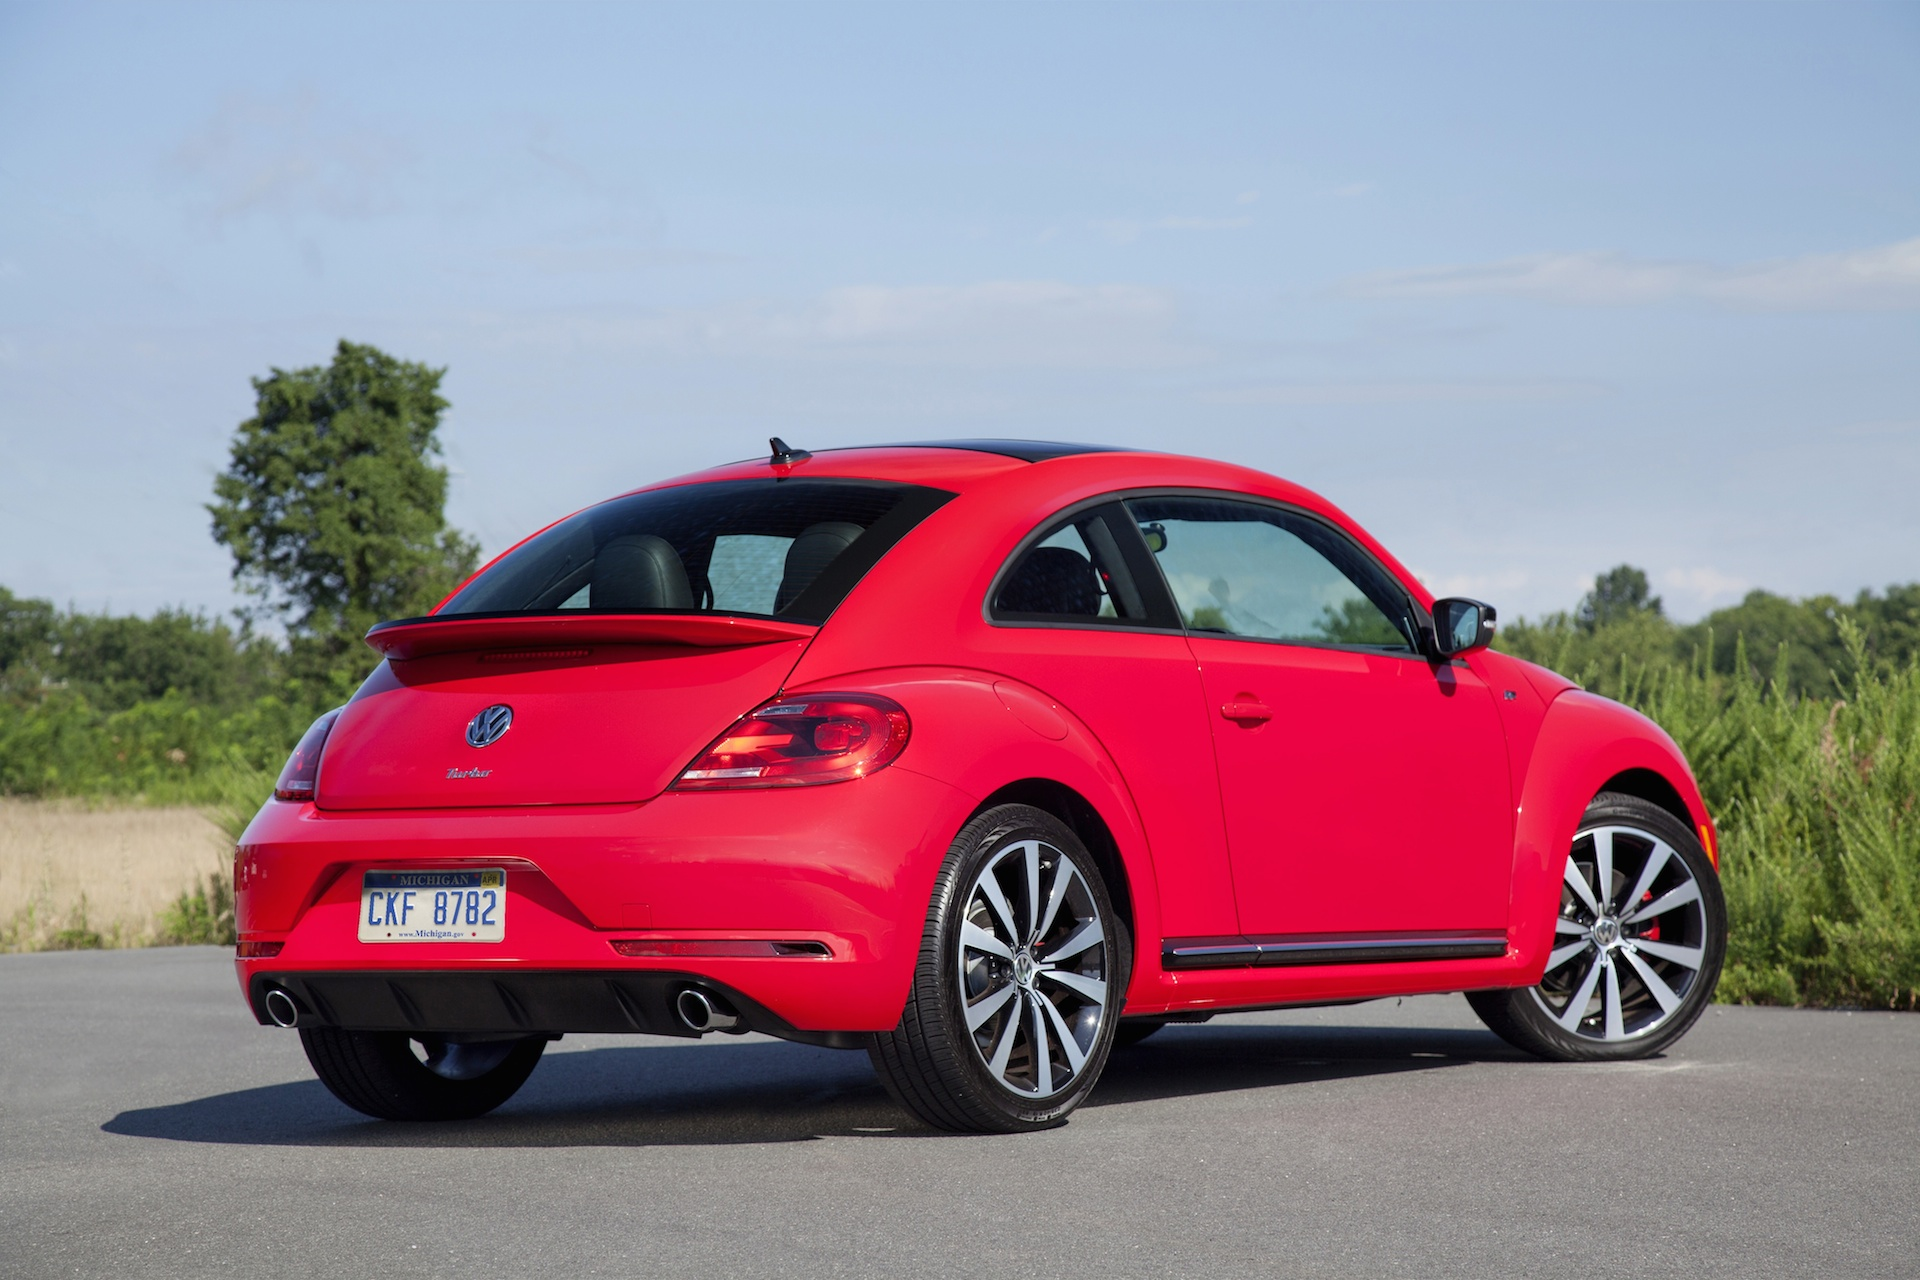 2015 Volkswagen Beetle (VW) Review, Ratings, Specs, Prices ...